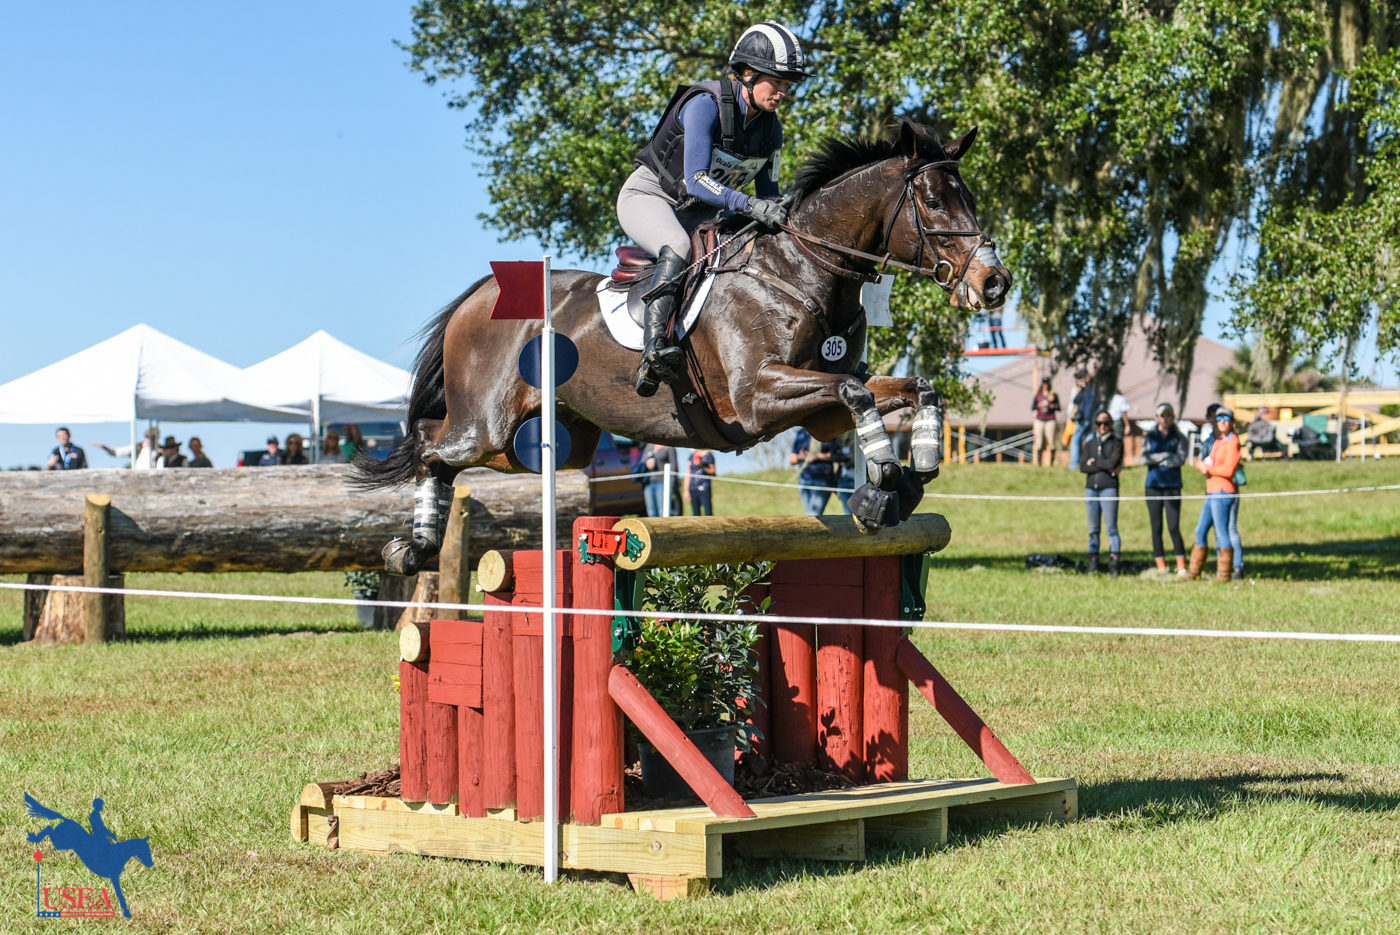 CCI3* - 4th - Erin Sylvester and Paddy The Caddy